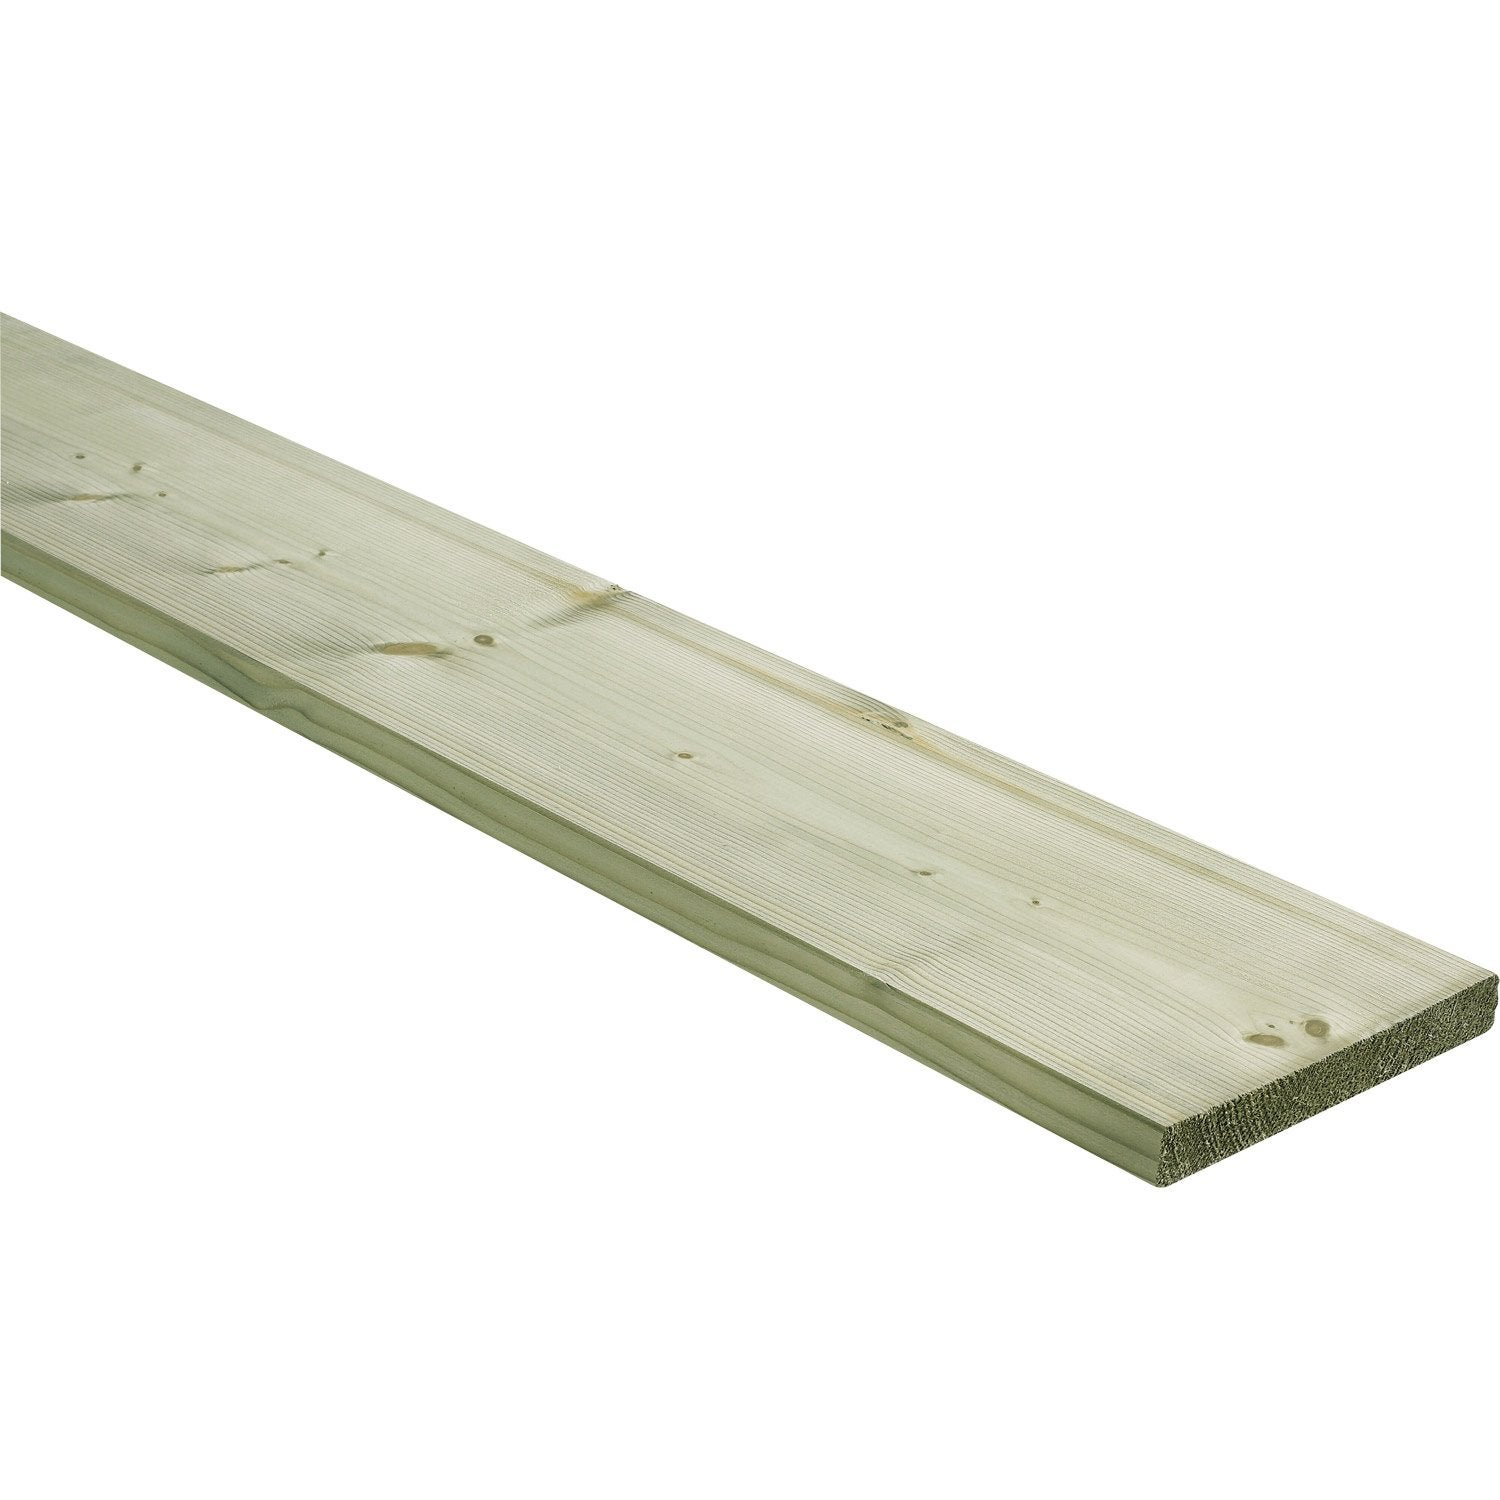 Planche sapin trait 25x195 mm 4 m leroy merlin for Bois autoclave classe 4 leroy merlin